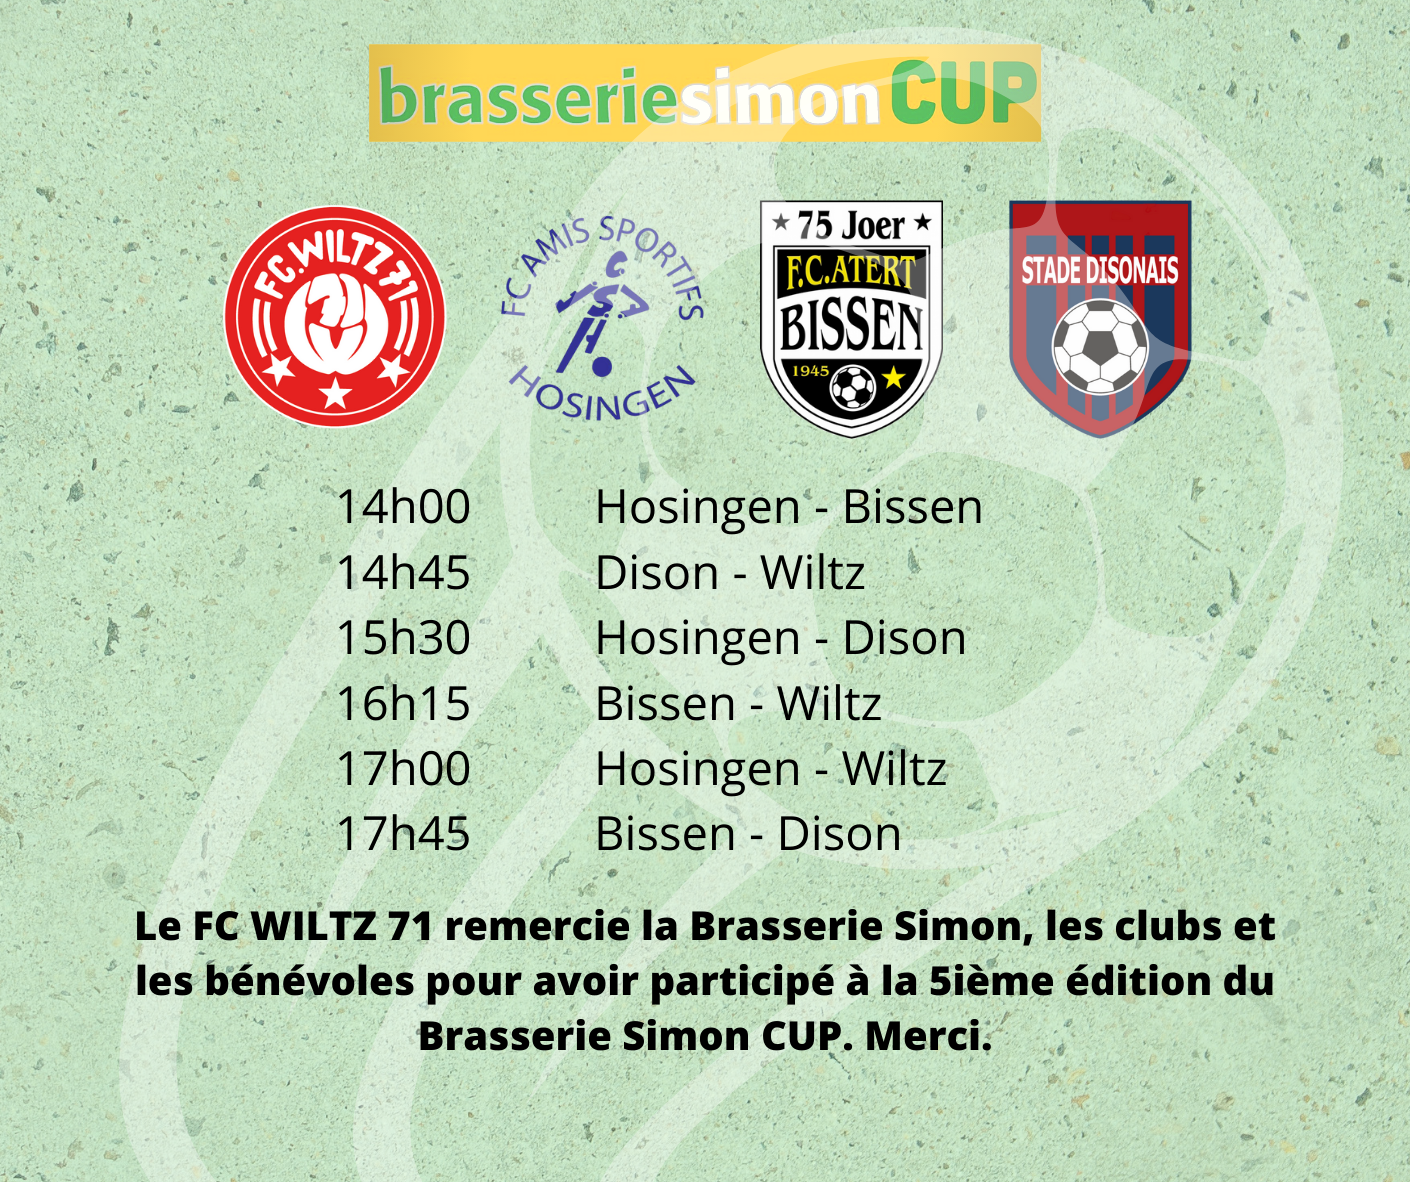 Brasserie Simon CUP: Letzter Tag